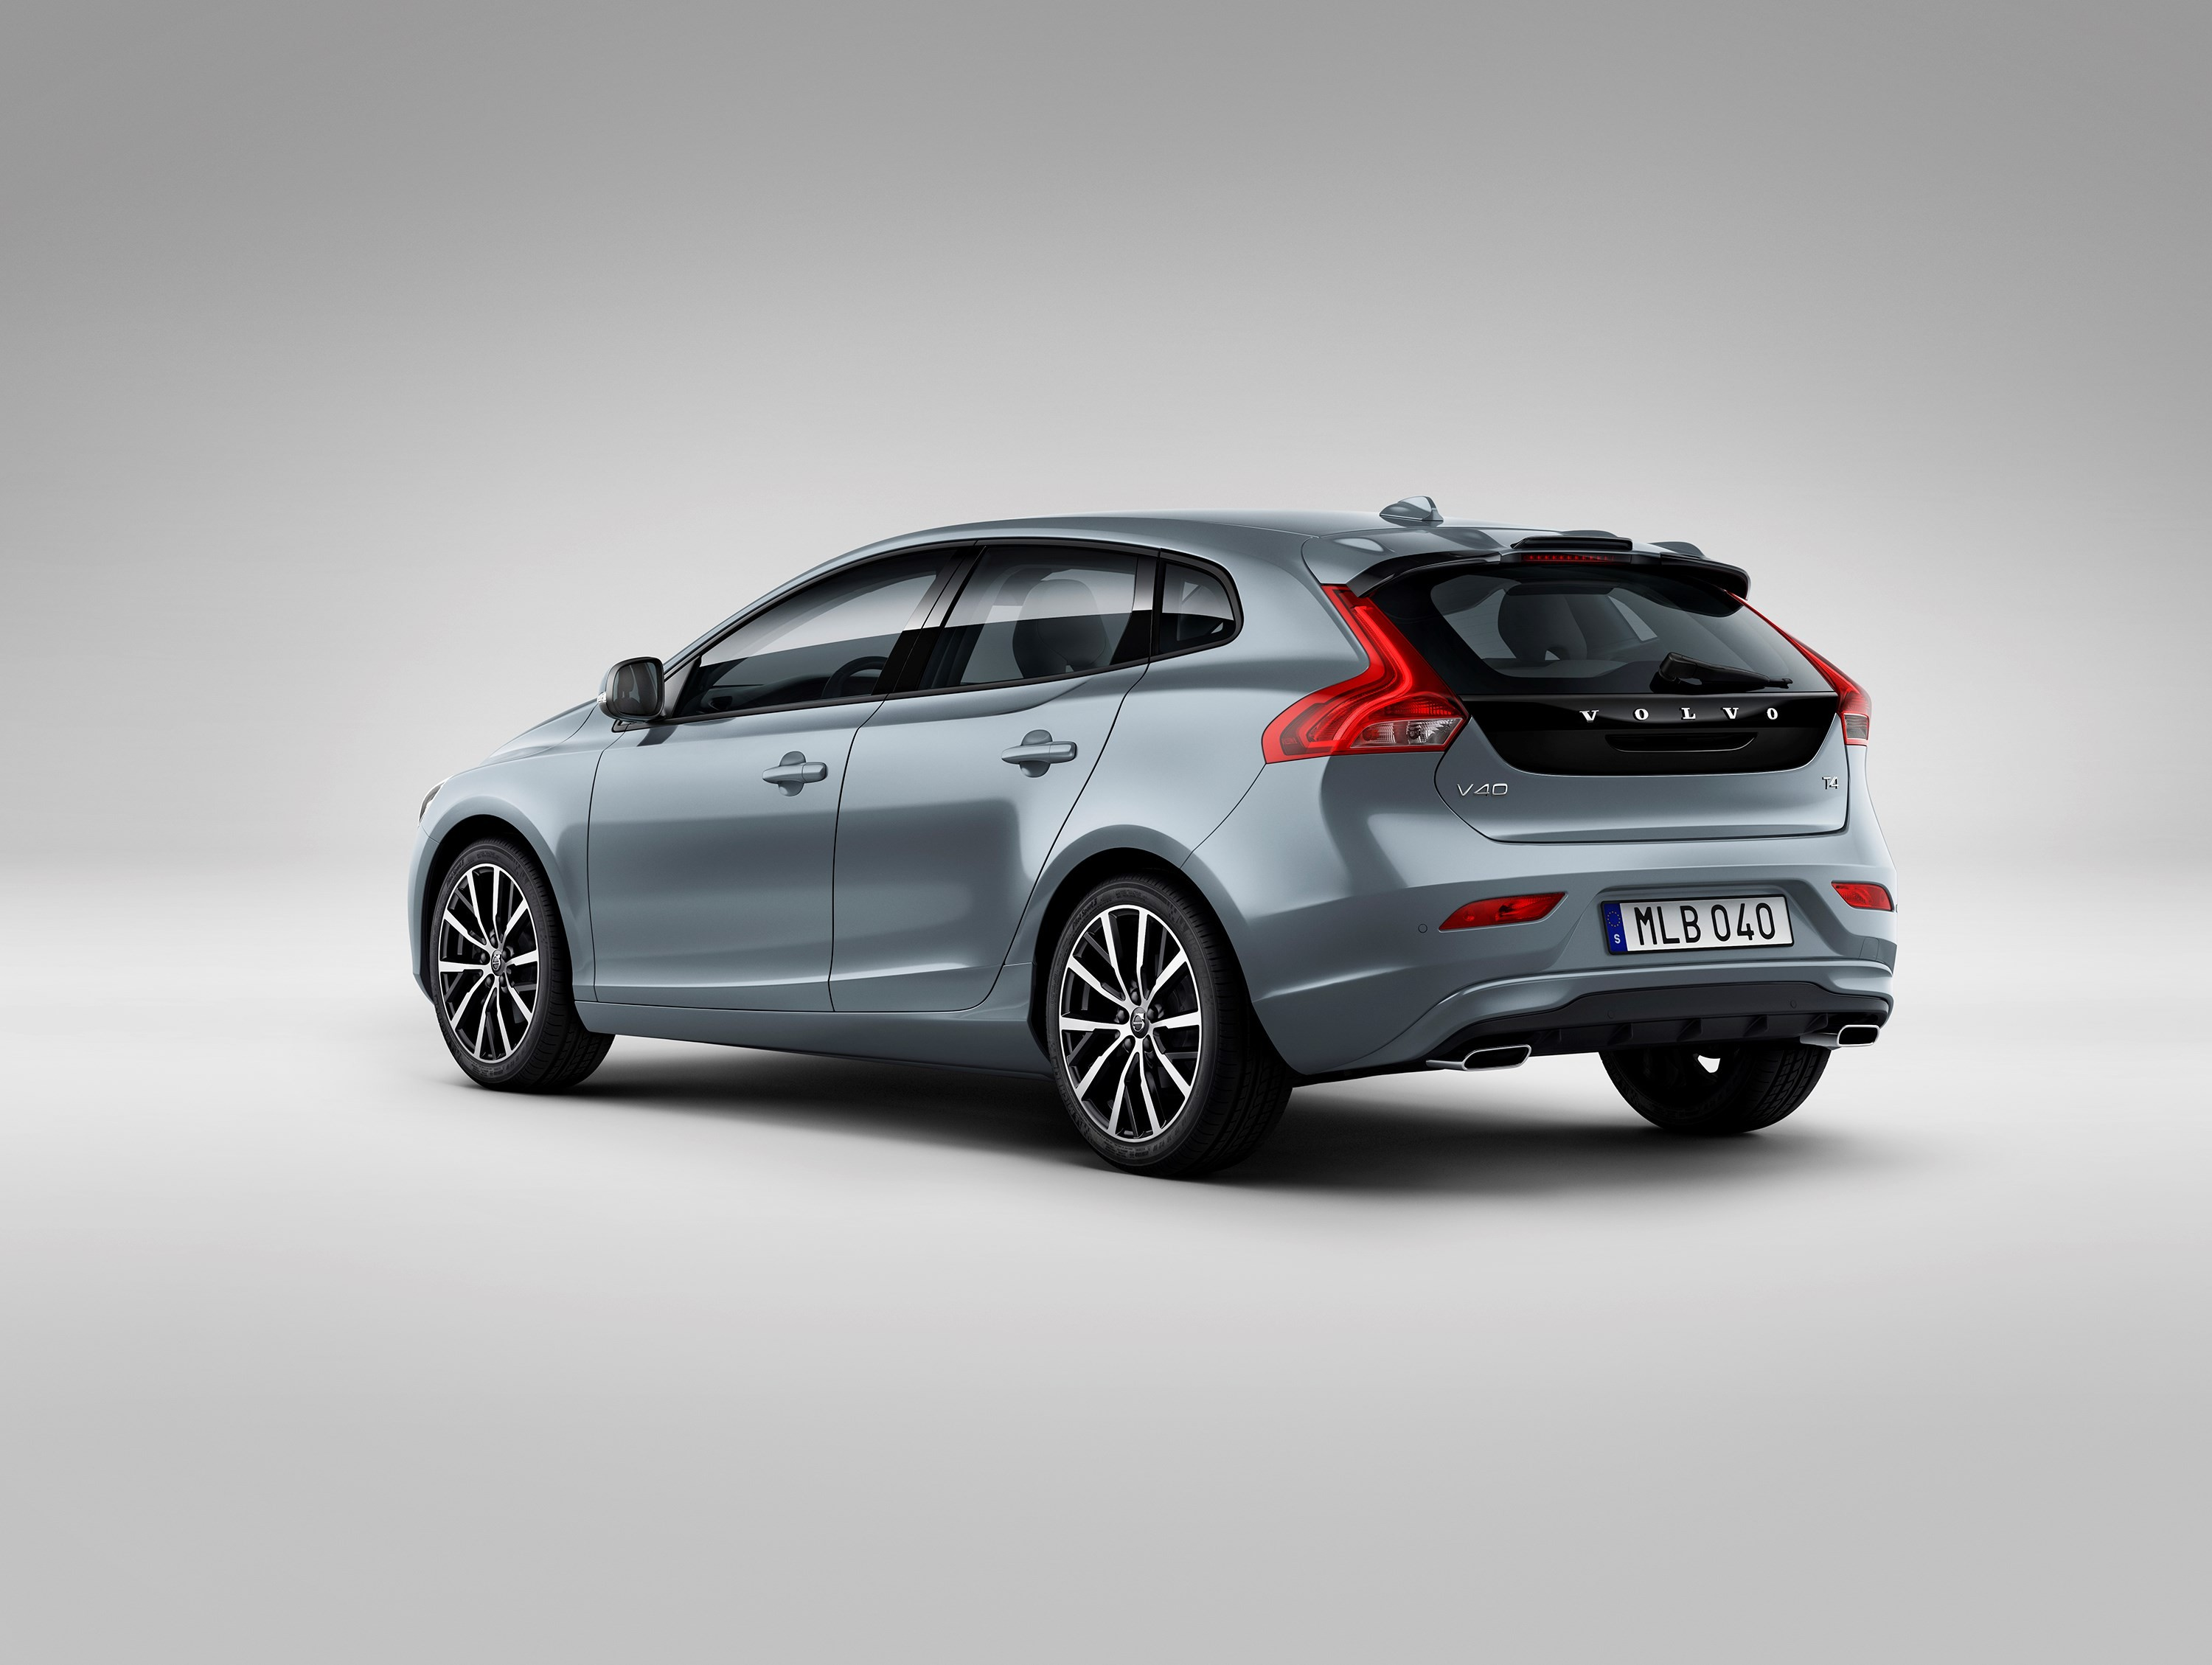 2017 volvo v40 facelift gains new headlights not much else autoevolution. Black Bedroom Furniture Sets. Home Design Ideas